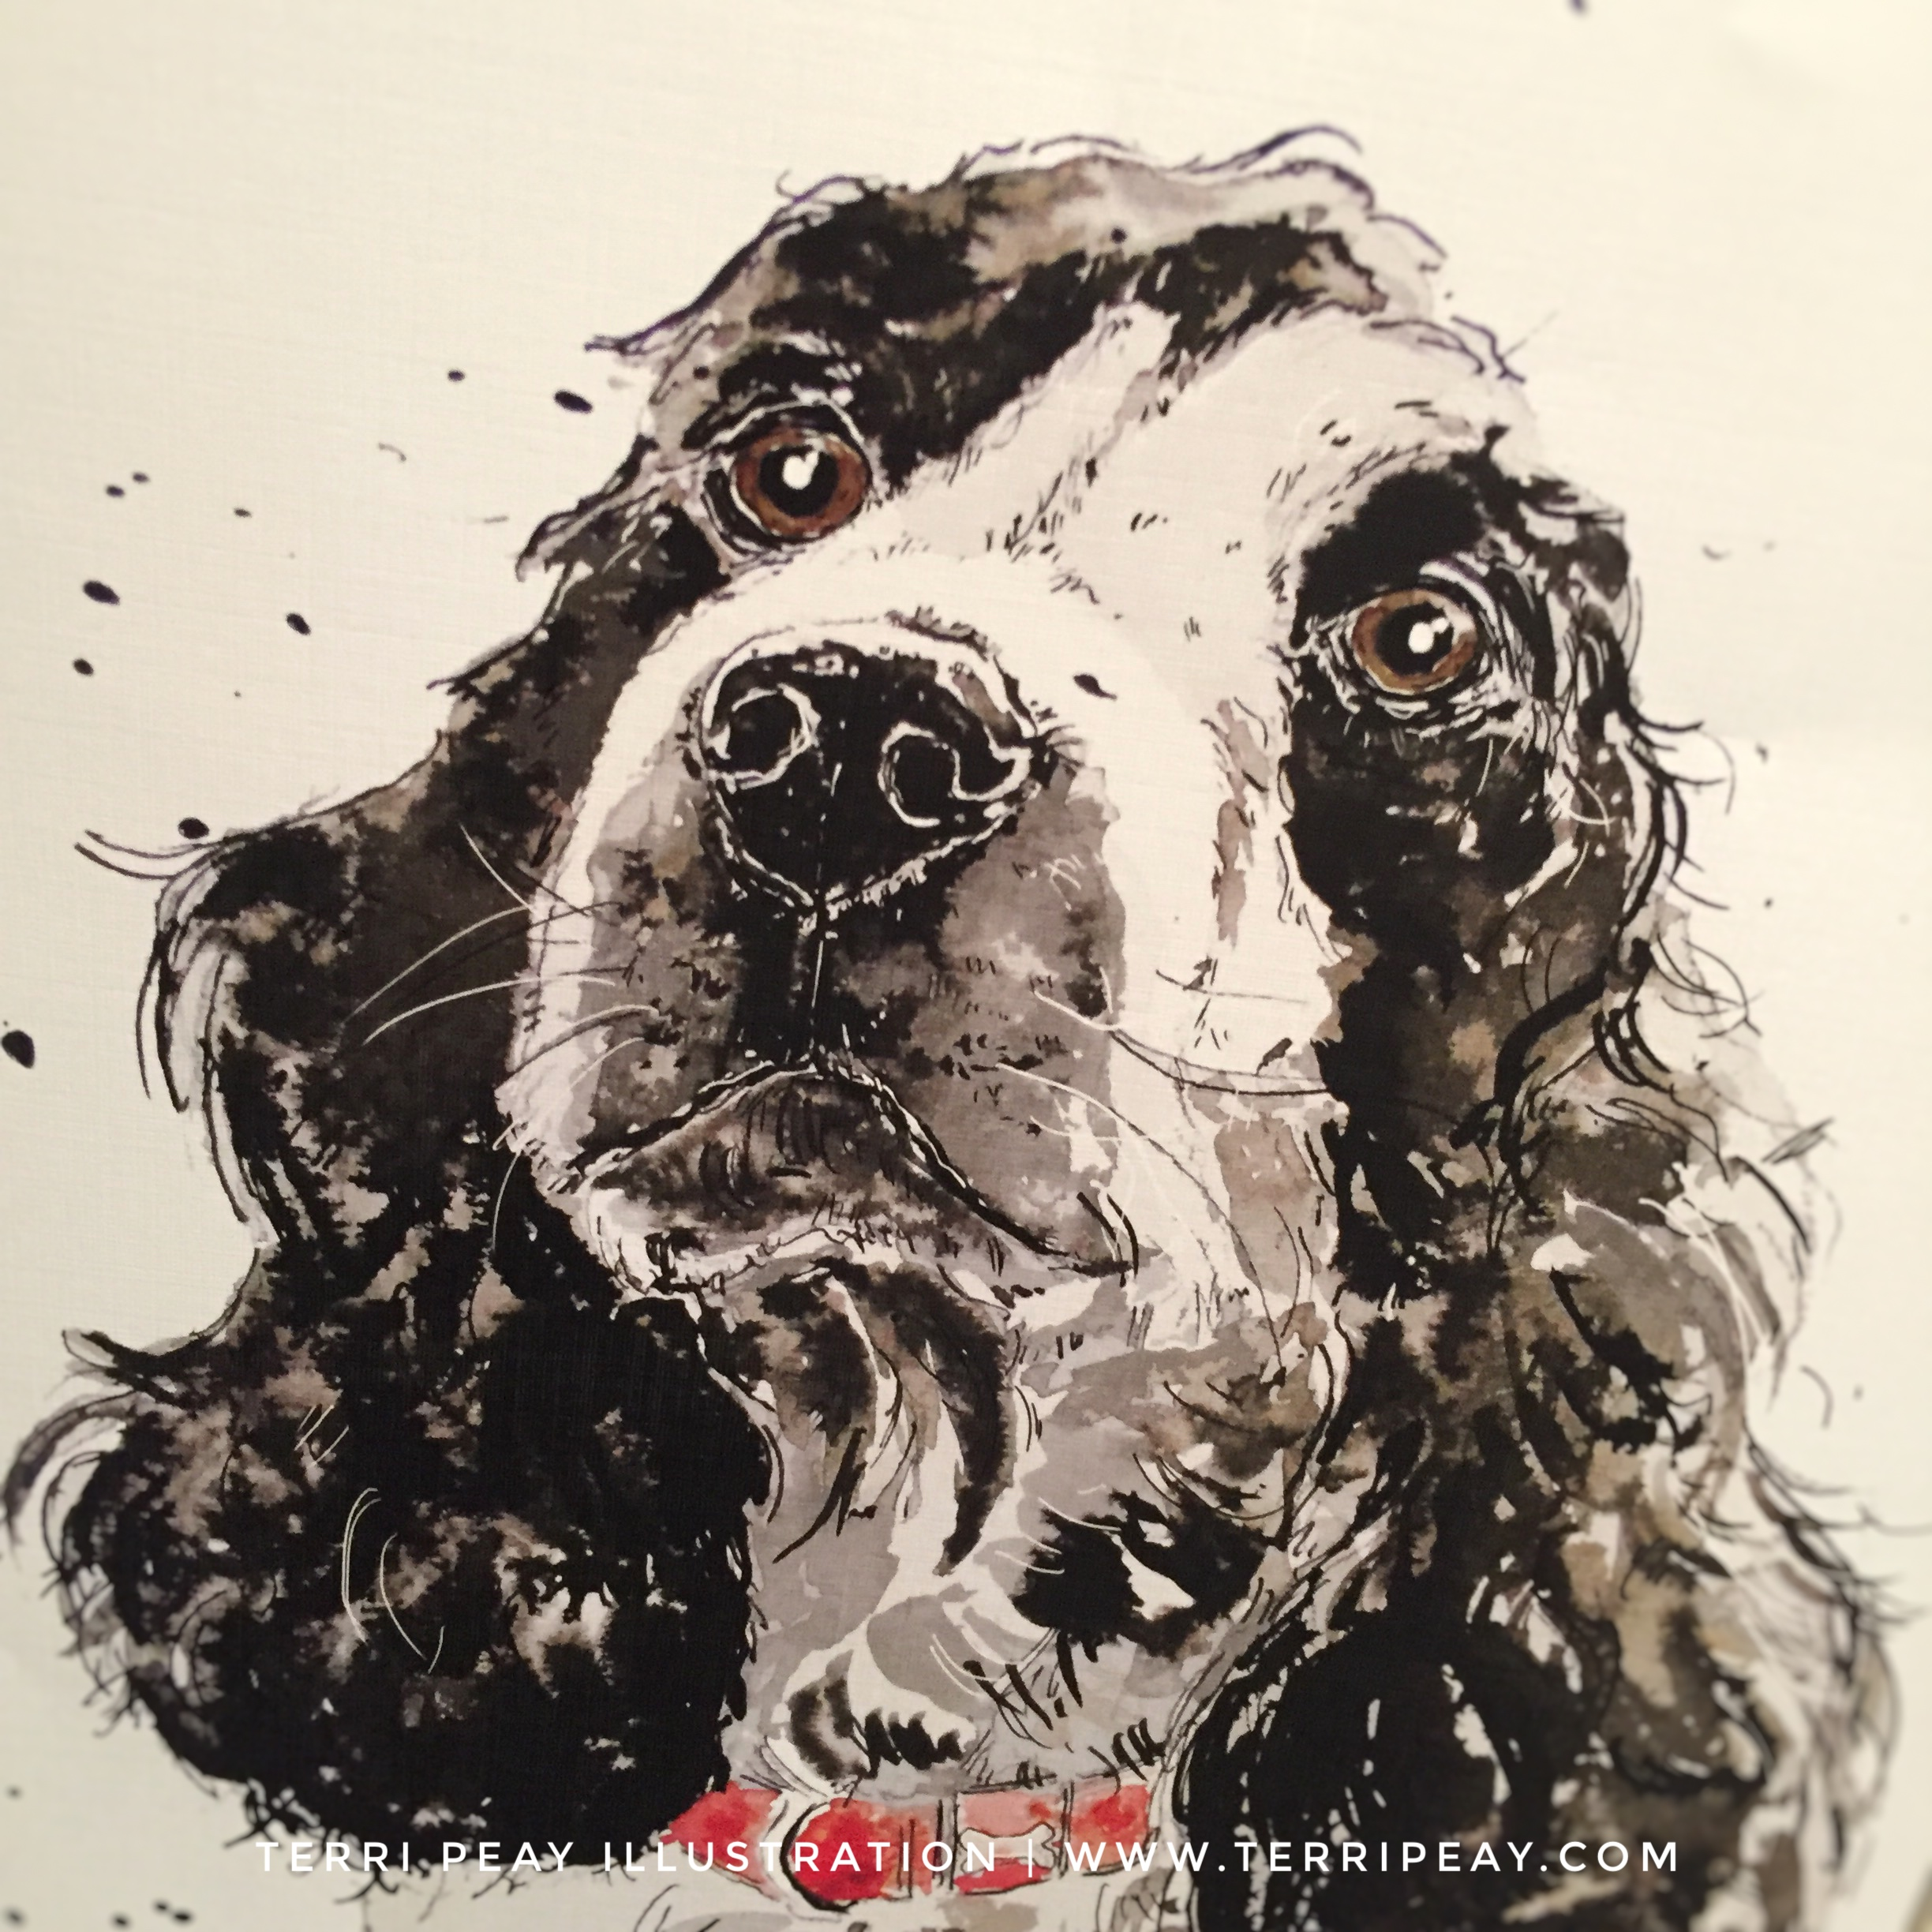 'Gracie' By Terri Peay